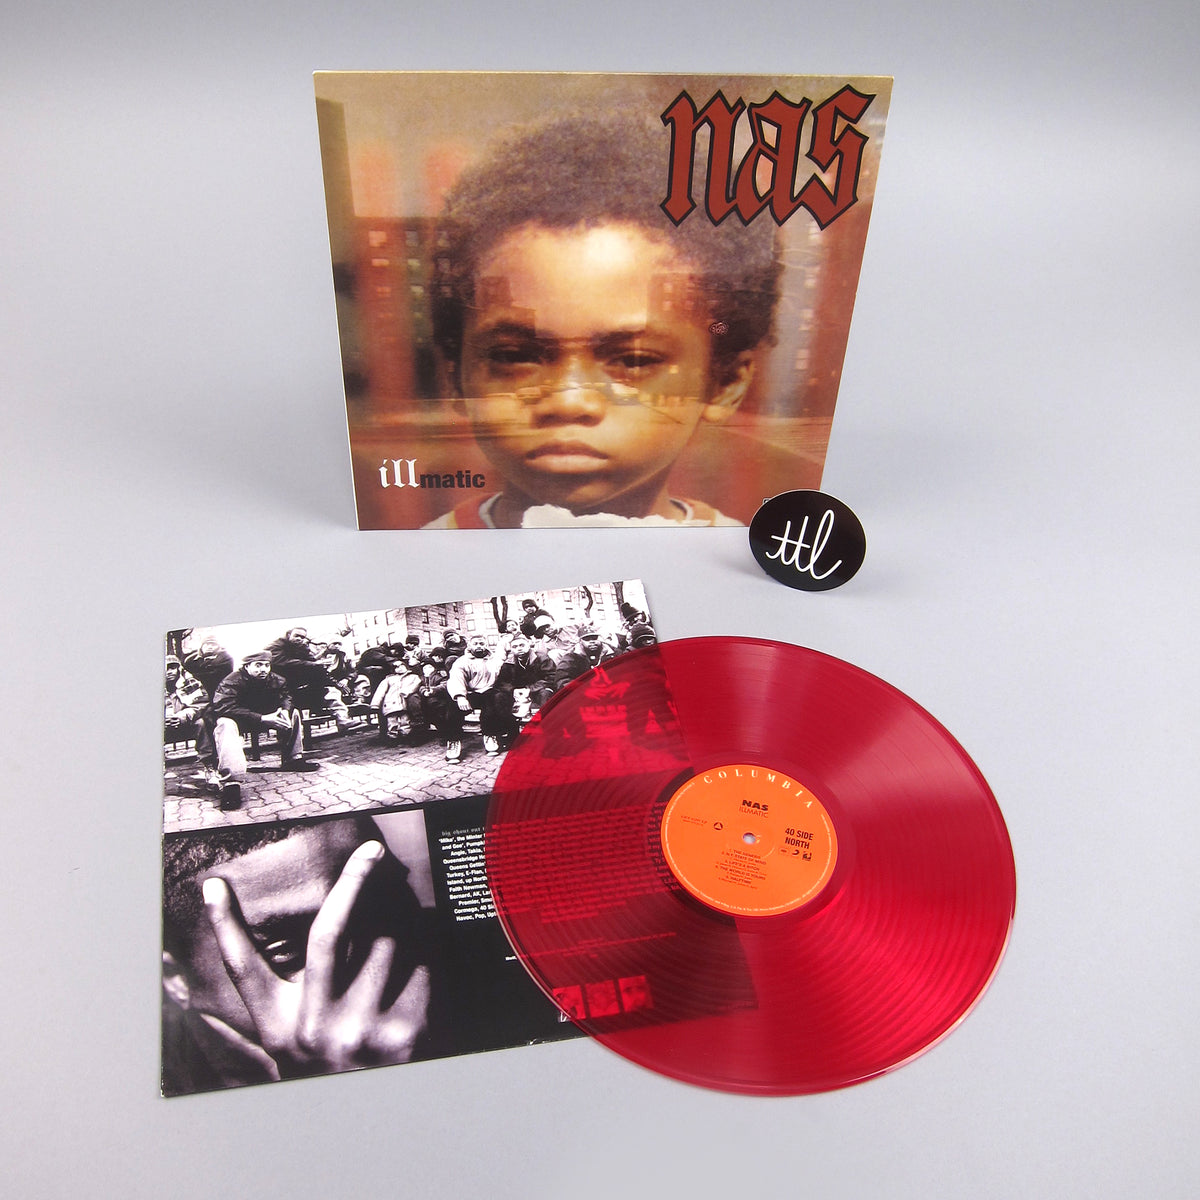 Nas: Illmatic (Colored Vinyl) Vinyl LP - Turntable Lab Exclusive spread